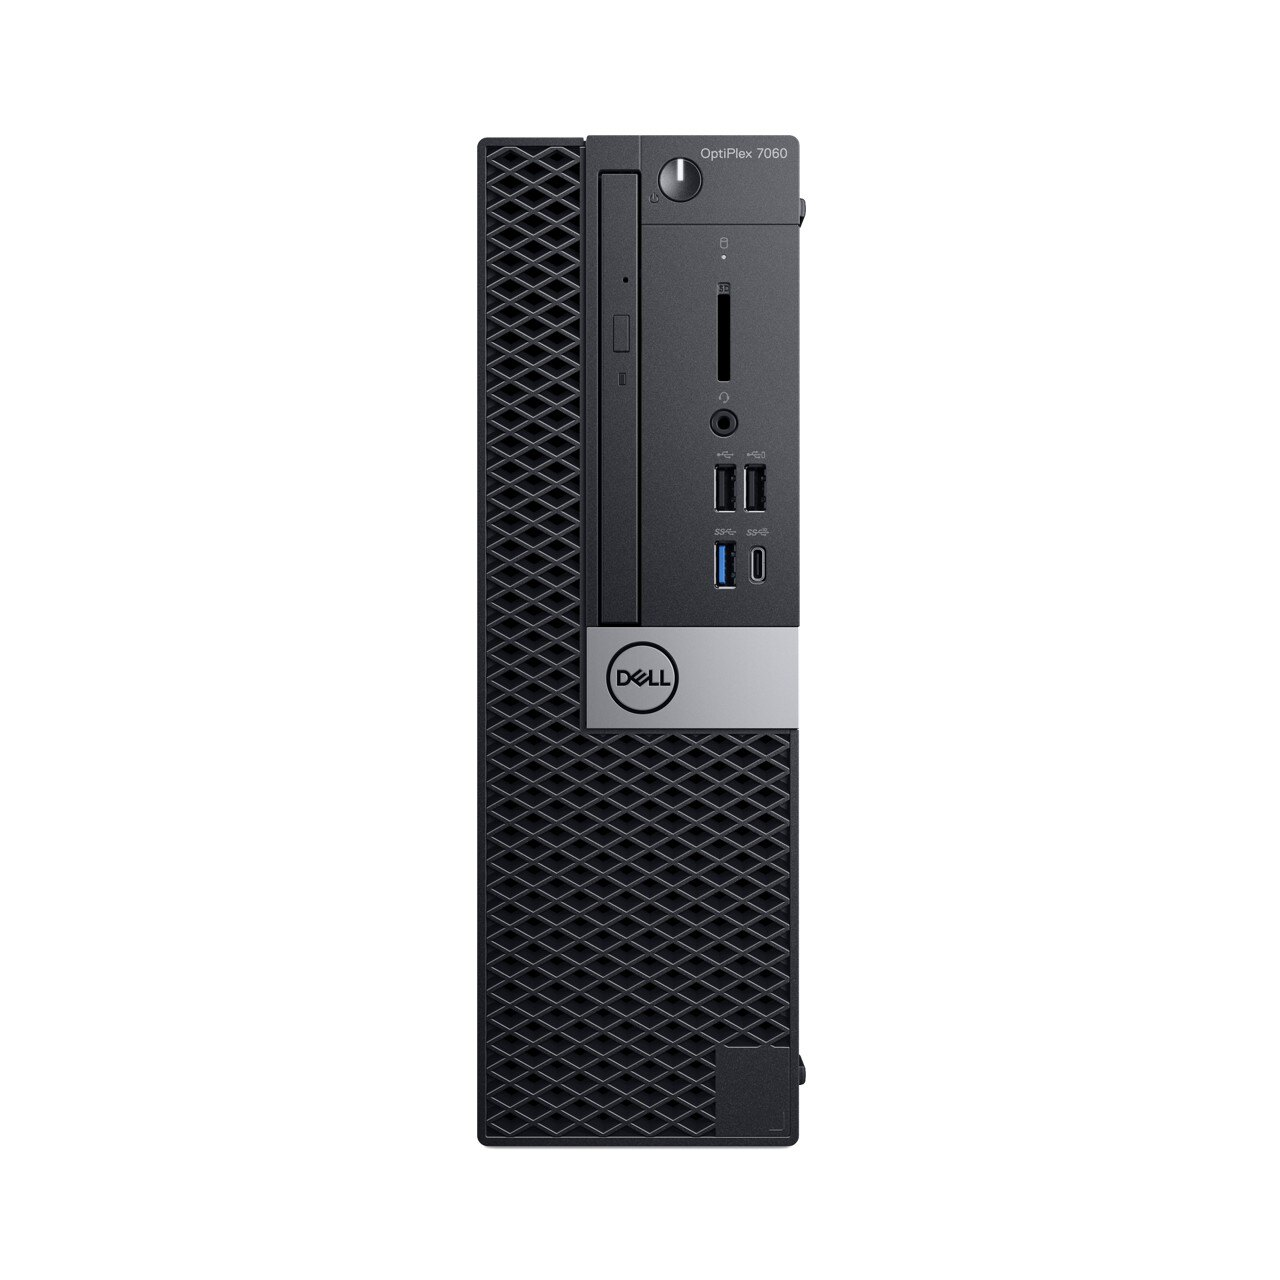 Luxurious Dell Optiplex Desk Small Form Radeon Dell Optiplex Desk Small Form Radeon Dell Xps 8500 Memory Specs Dell Xps 8500 Morboard Specifications dpreview Dell Xps 8500 Specs